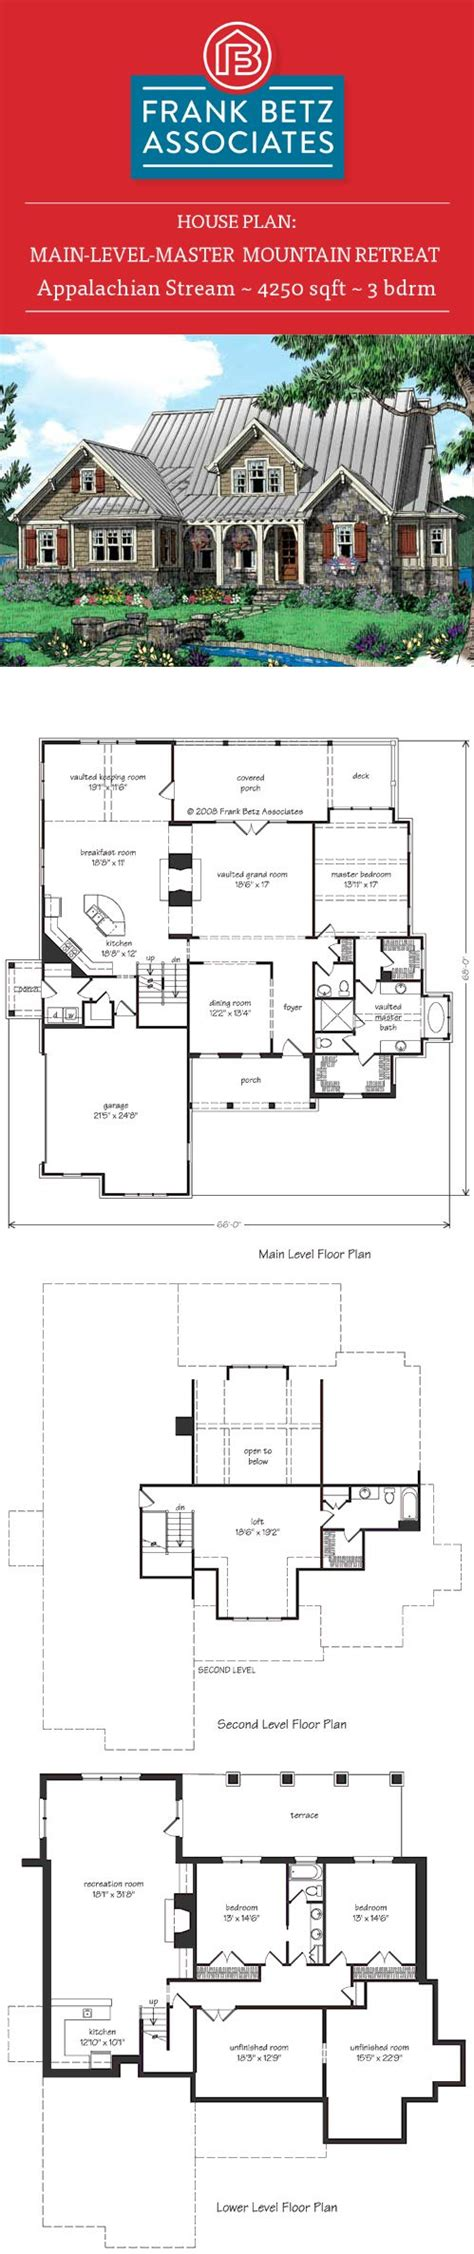 southern heritage house plans home design townhome plans townhouse catalog southern designer luxamcc